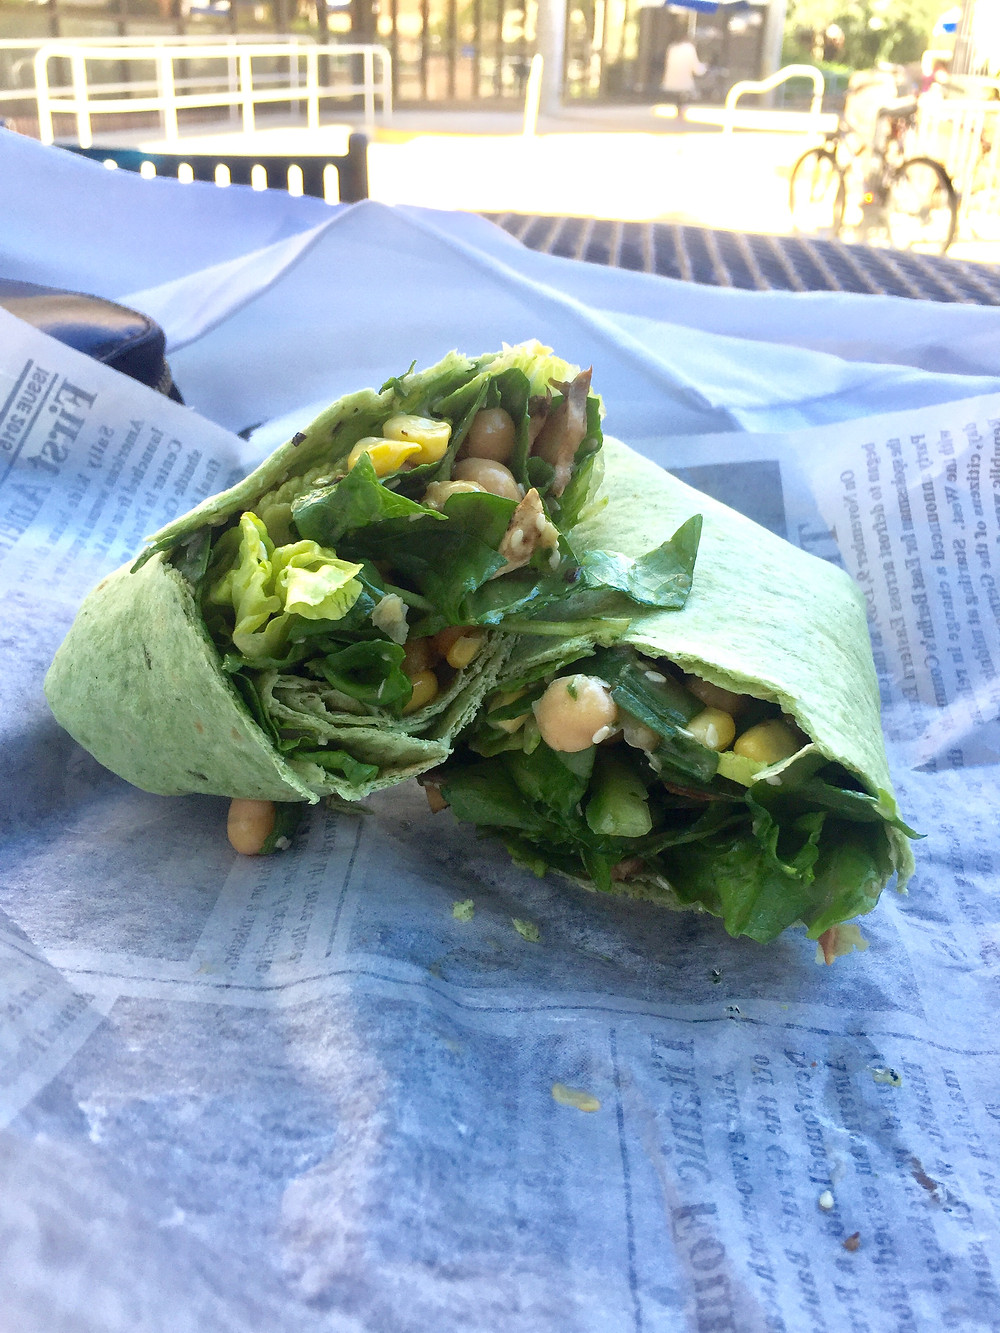 A spinach wrap from Chopped and Wrapped.